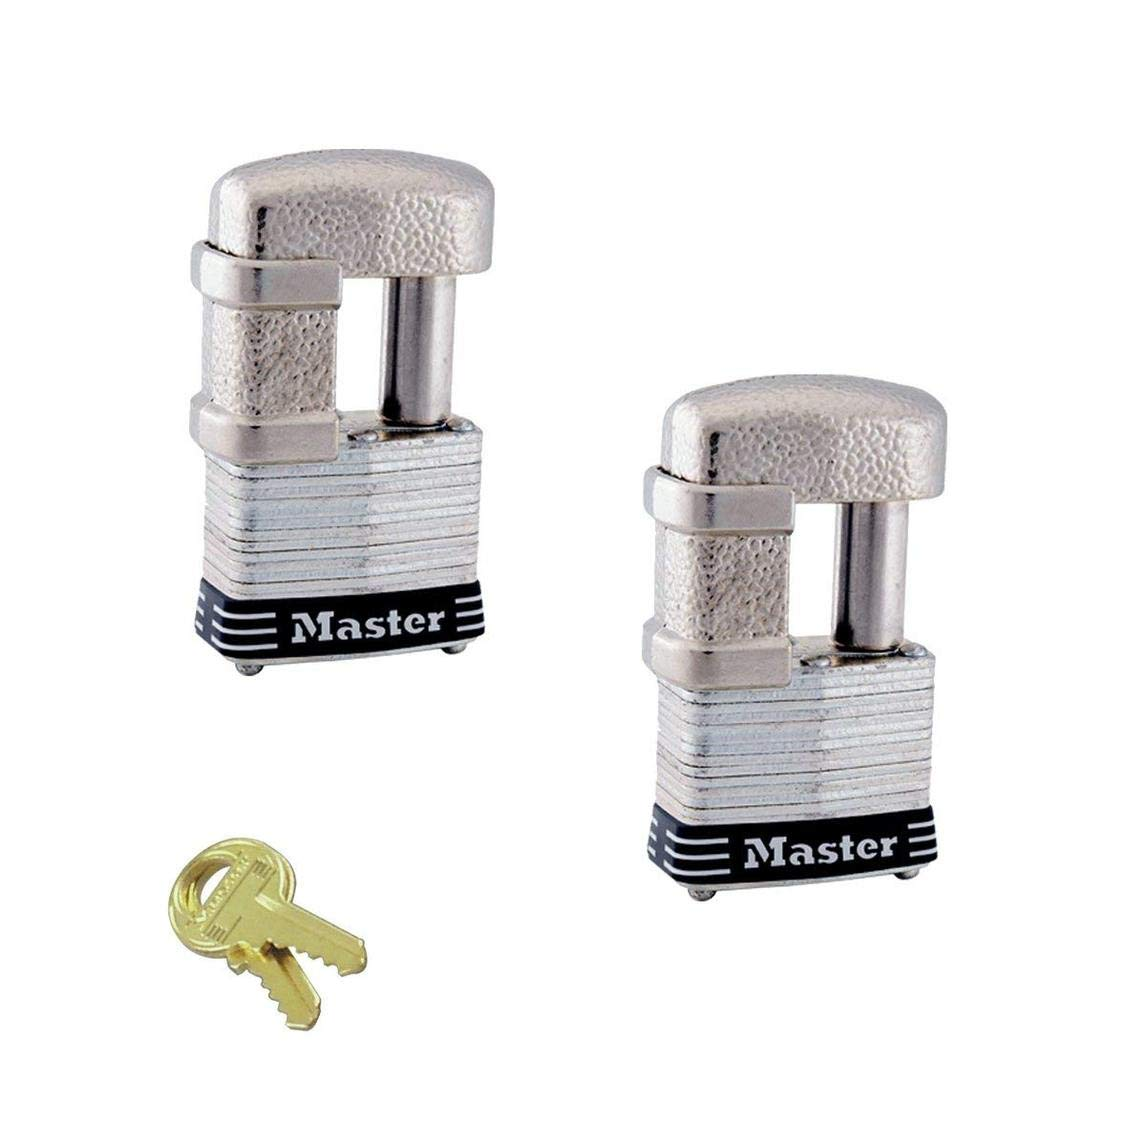 Master Lock - (2) Keyed Alike Multi Purpose Padlocks 37NKA-2 w/BumpStop Technology